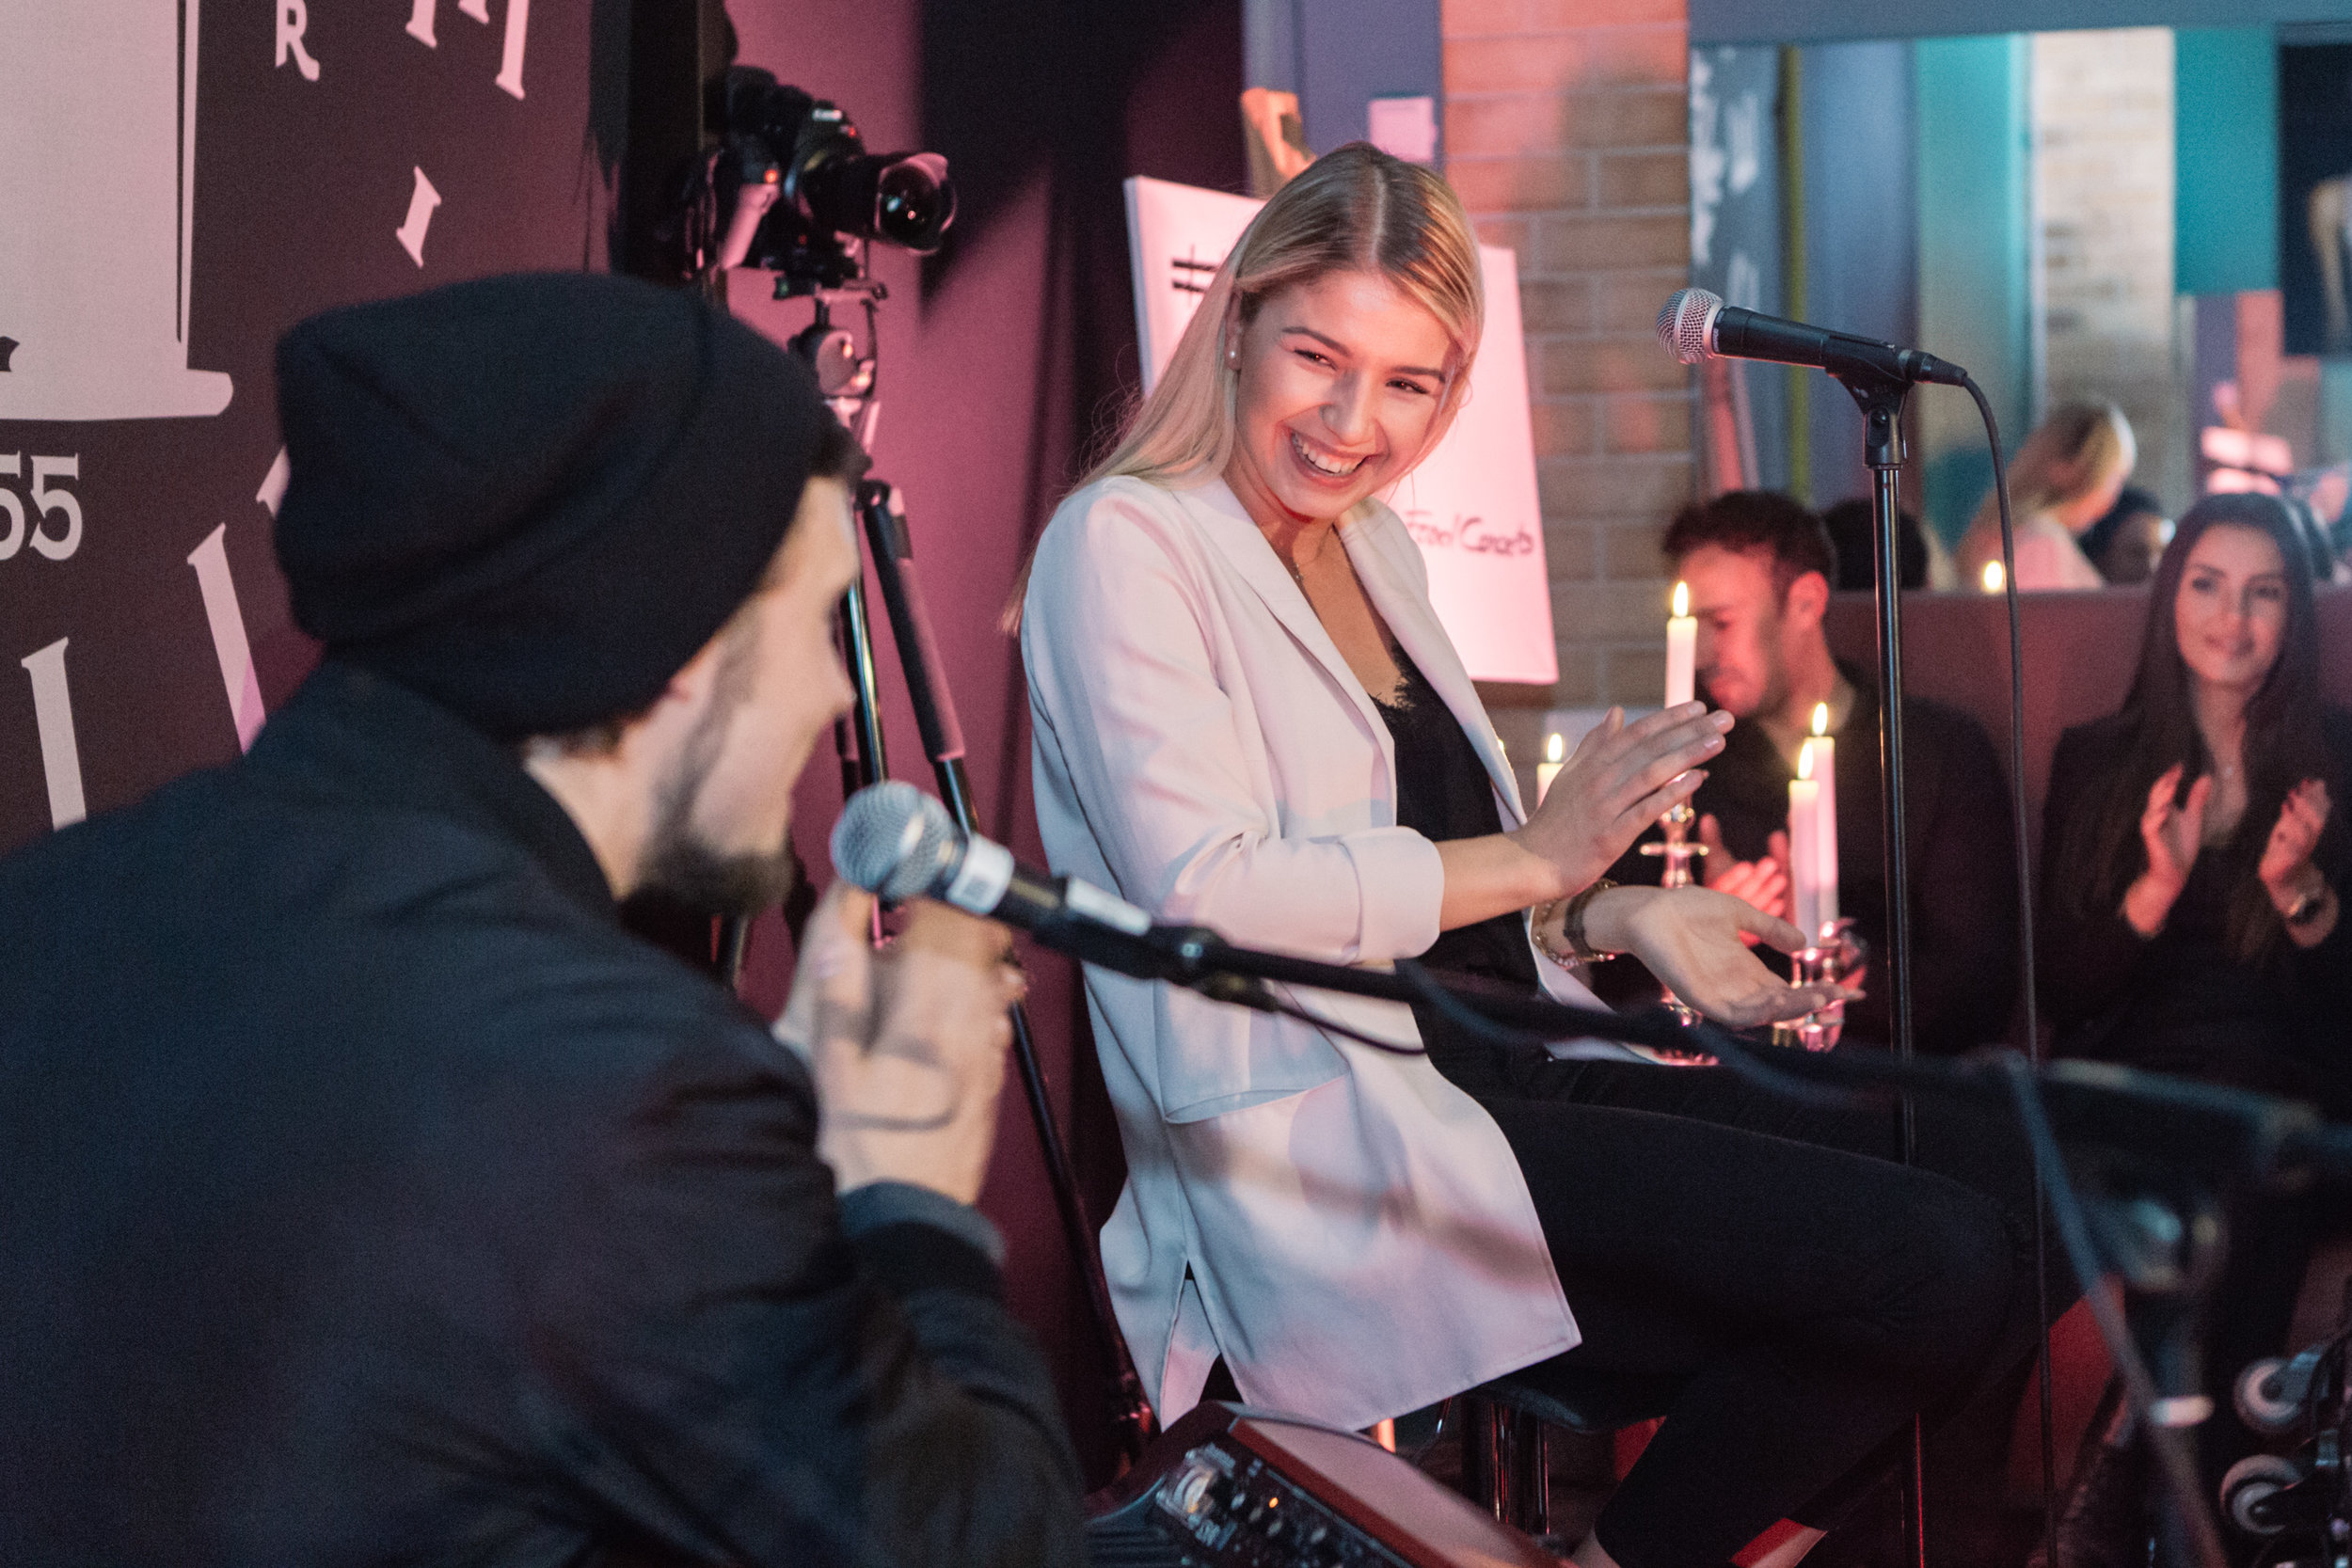 20170423-PRIVAT-SOUL-FOOD-CONCERT-NICOLE-CROSS-THINK-OUT-OF-THE-BOX-OFFENBLENDE-TK-015.jpg